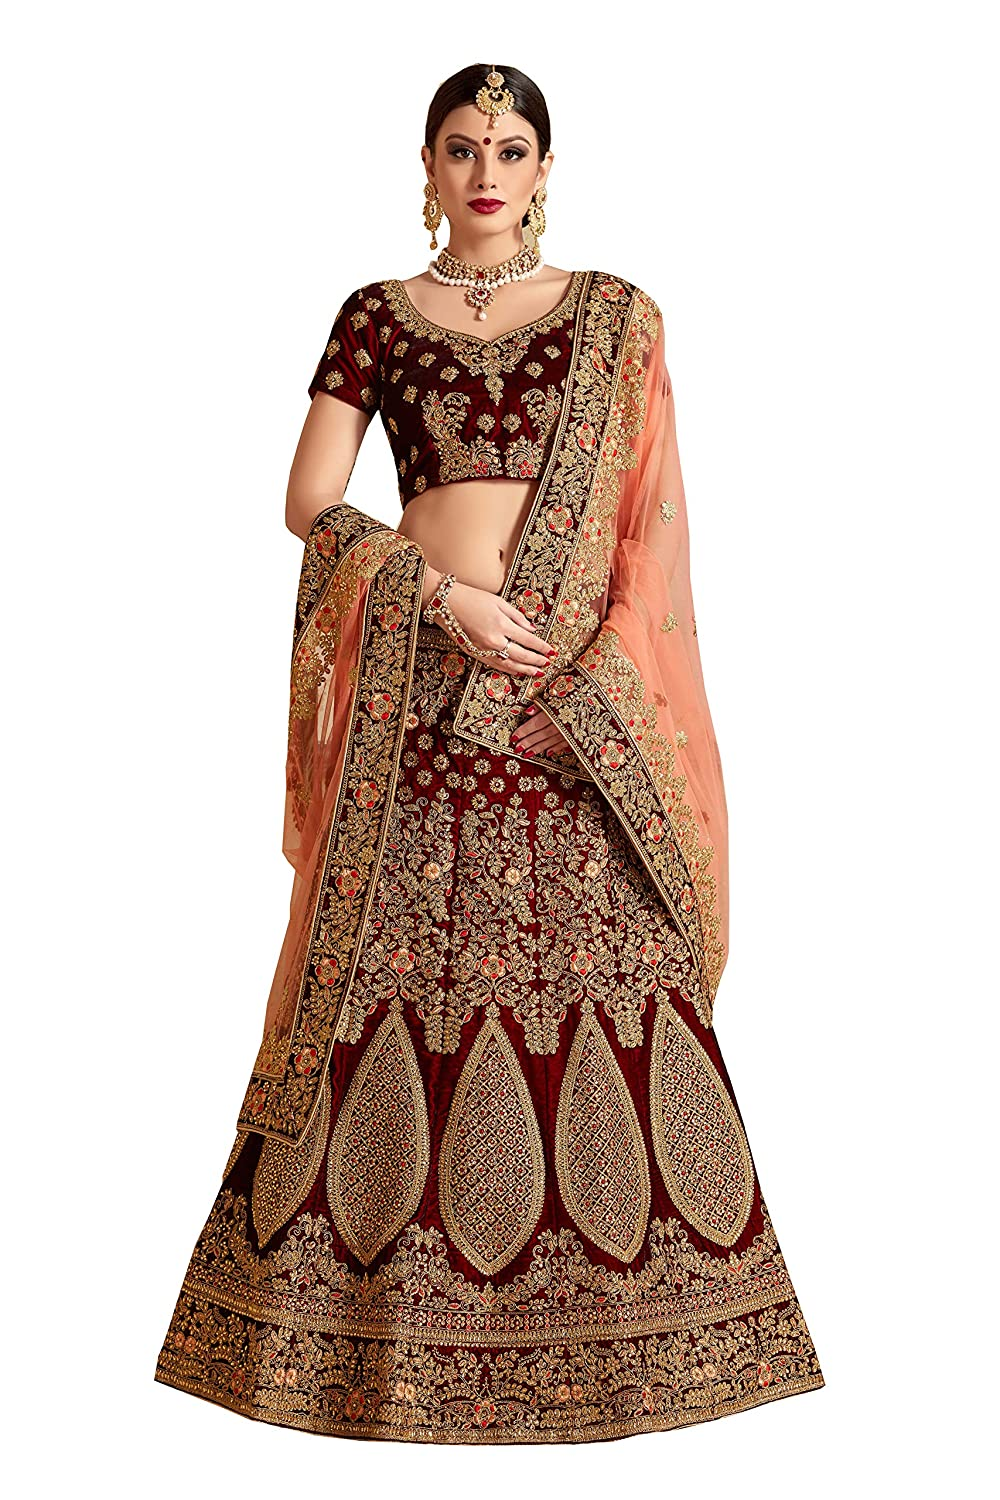 Get 55% Off on Ethnic Wear Designer Lehengas Cholis Pure Velvet & Net Bridal Lehenga Choli for girls Maroon Free size